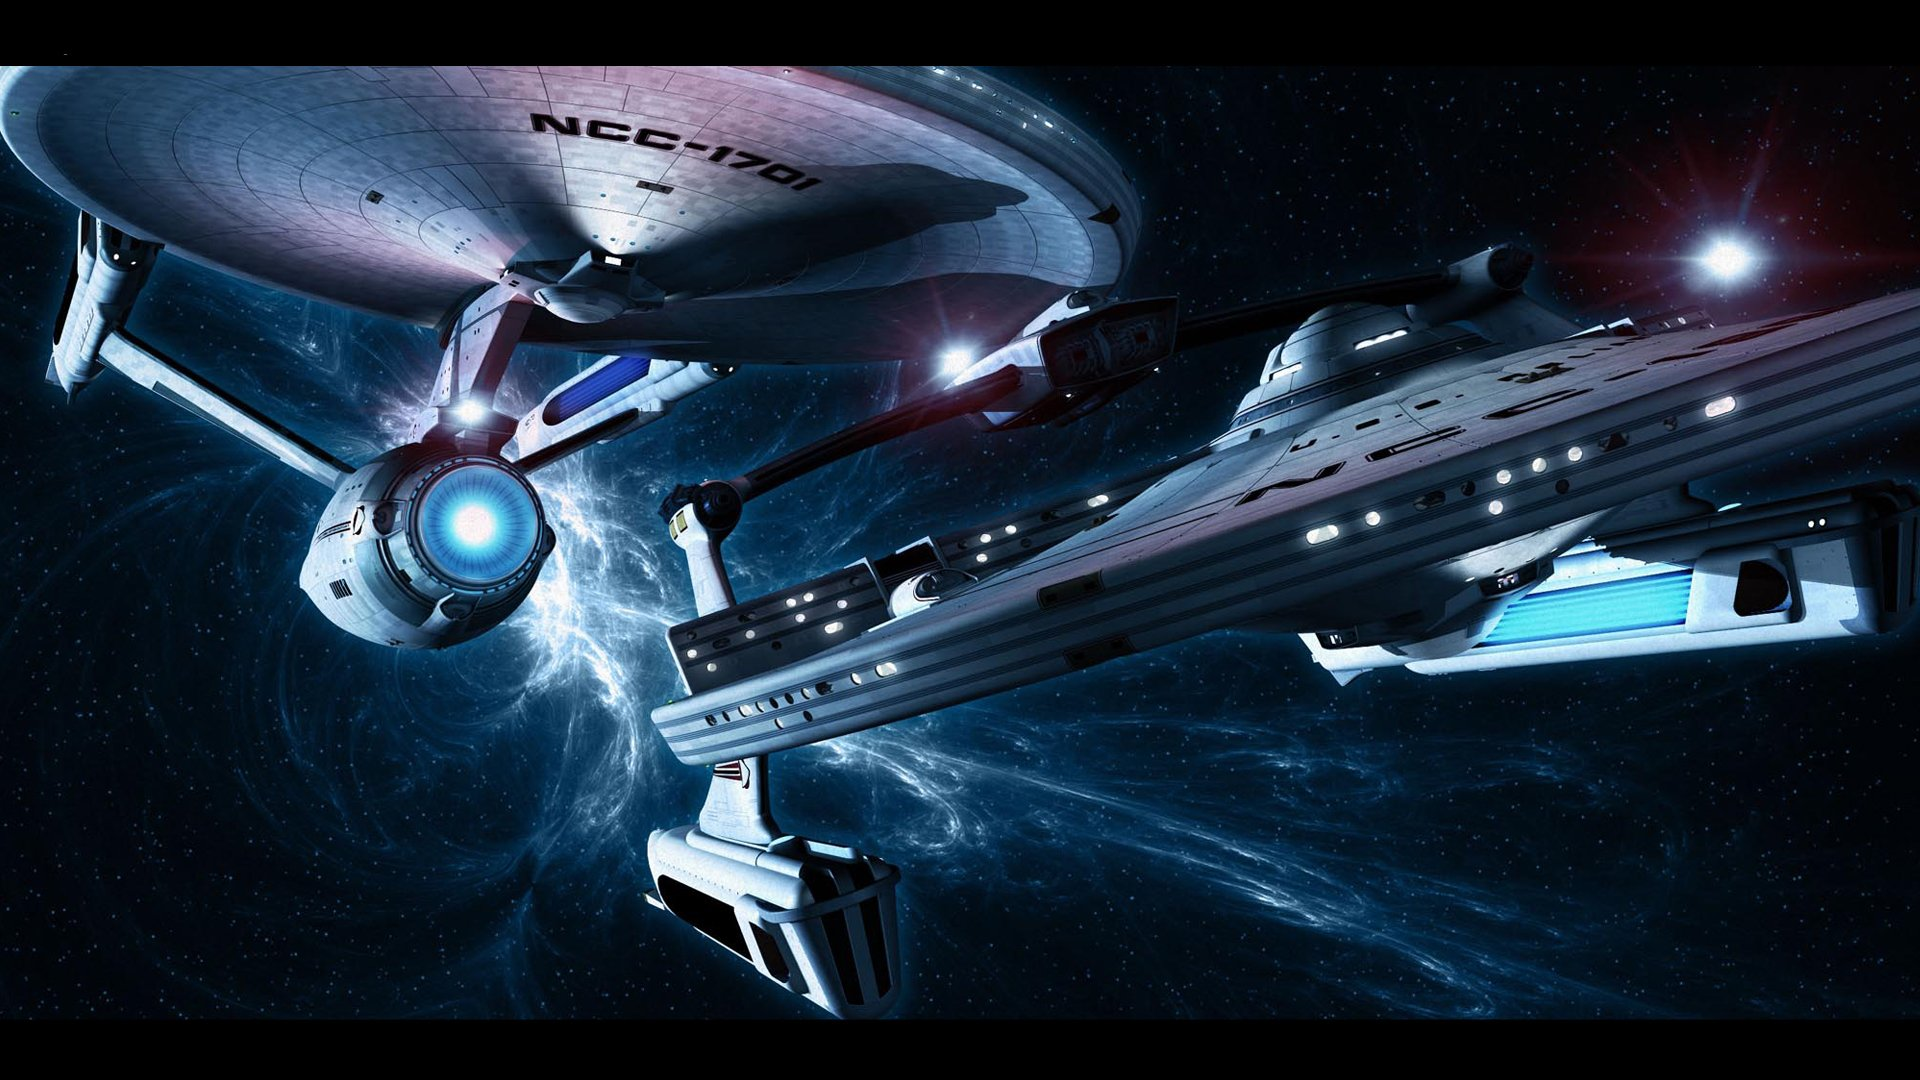 Sci Fi - Star Trek  Enterprise (Star Trek) Reliant Wallpaper